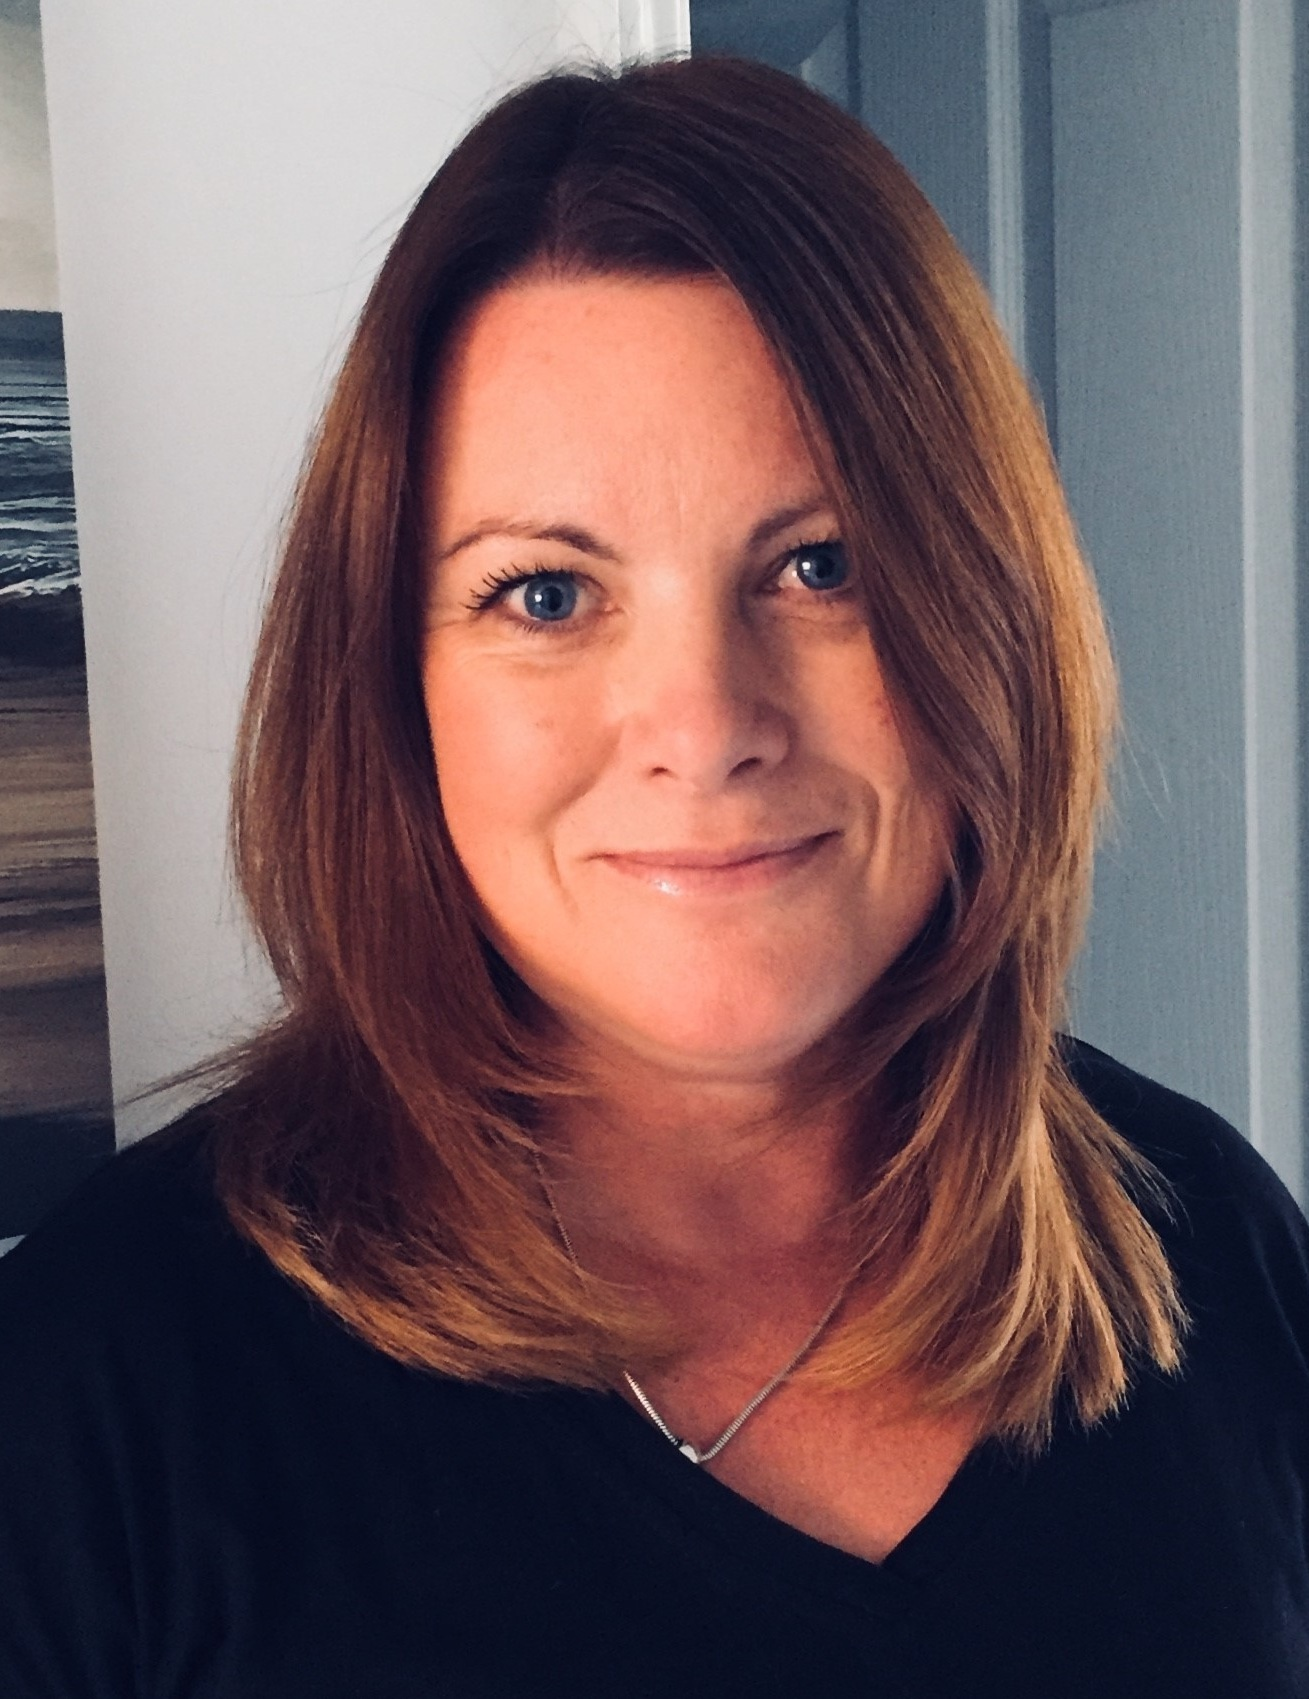 An avid reader all my life, I started to write The Stone House after completing a short online writing course with Curtis Brown. I live in the Chilterns with my husband and children, and divide my time between my job as a hairdresser, my family and my writing. - Kate Galley